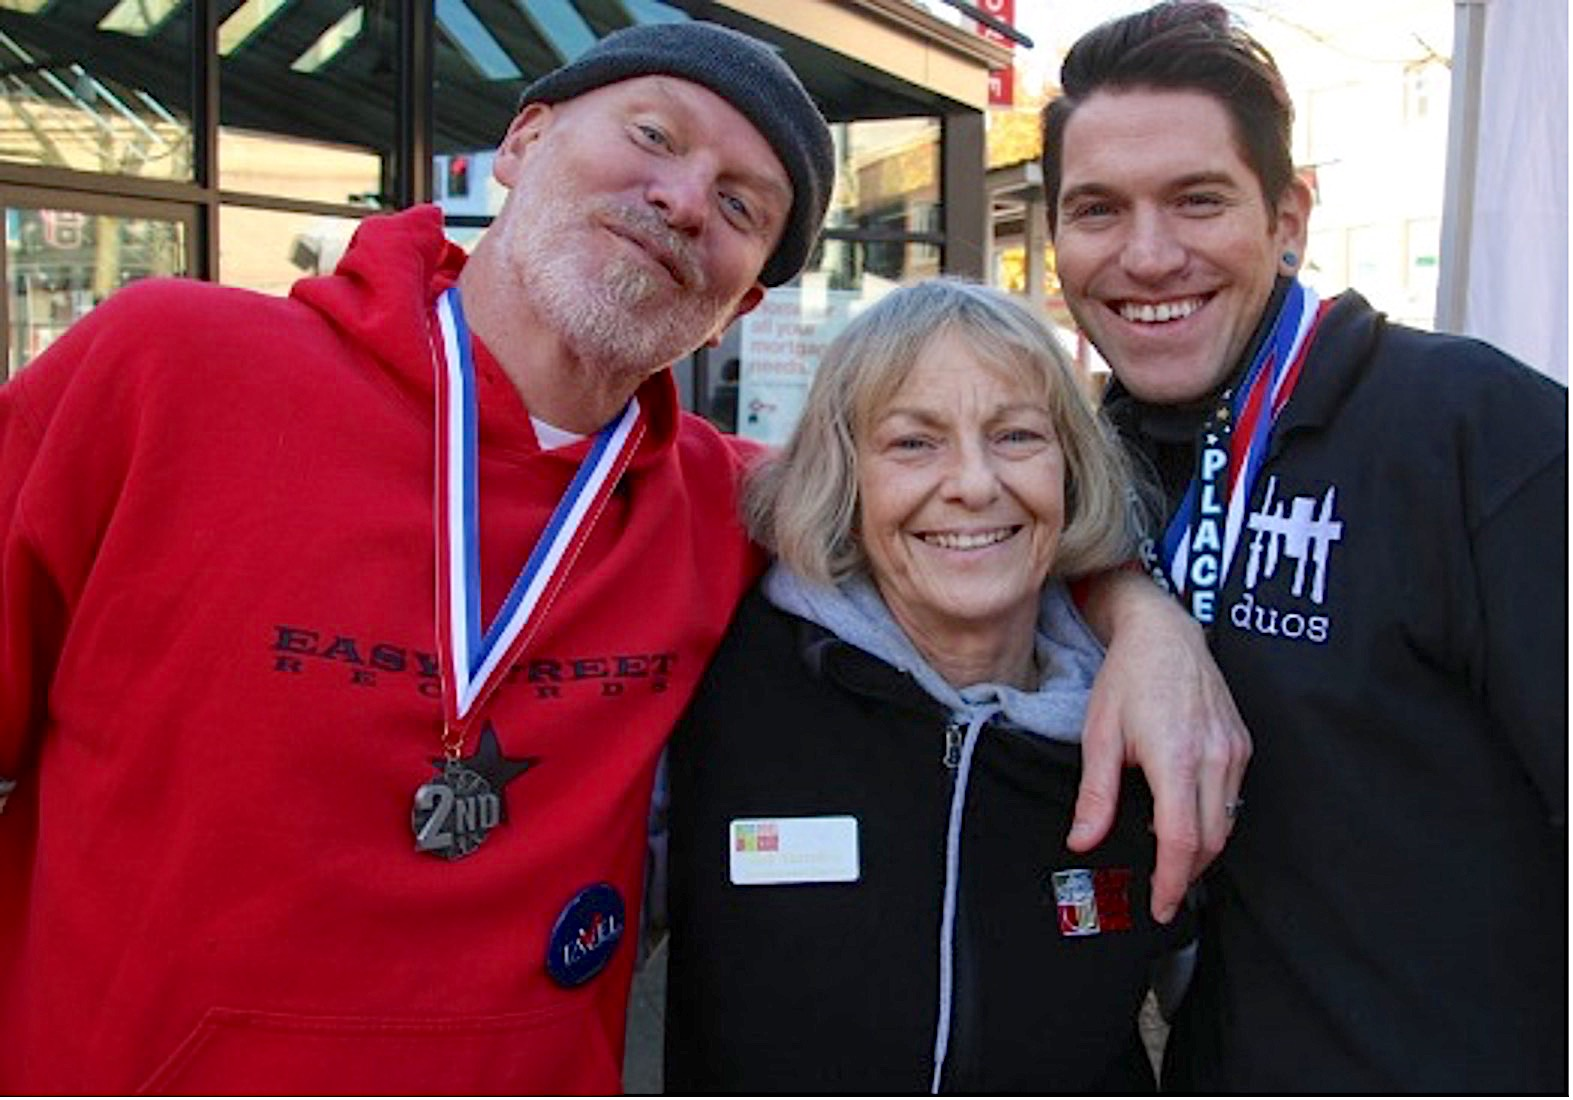 Matt Vaughan, owner of Easy Street, Judi & Ben Jury, co-owner of Duos Catering - 1st and 2nd place winner of the Chili Cook-off of the Harvest Festival 2019